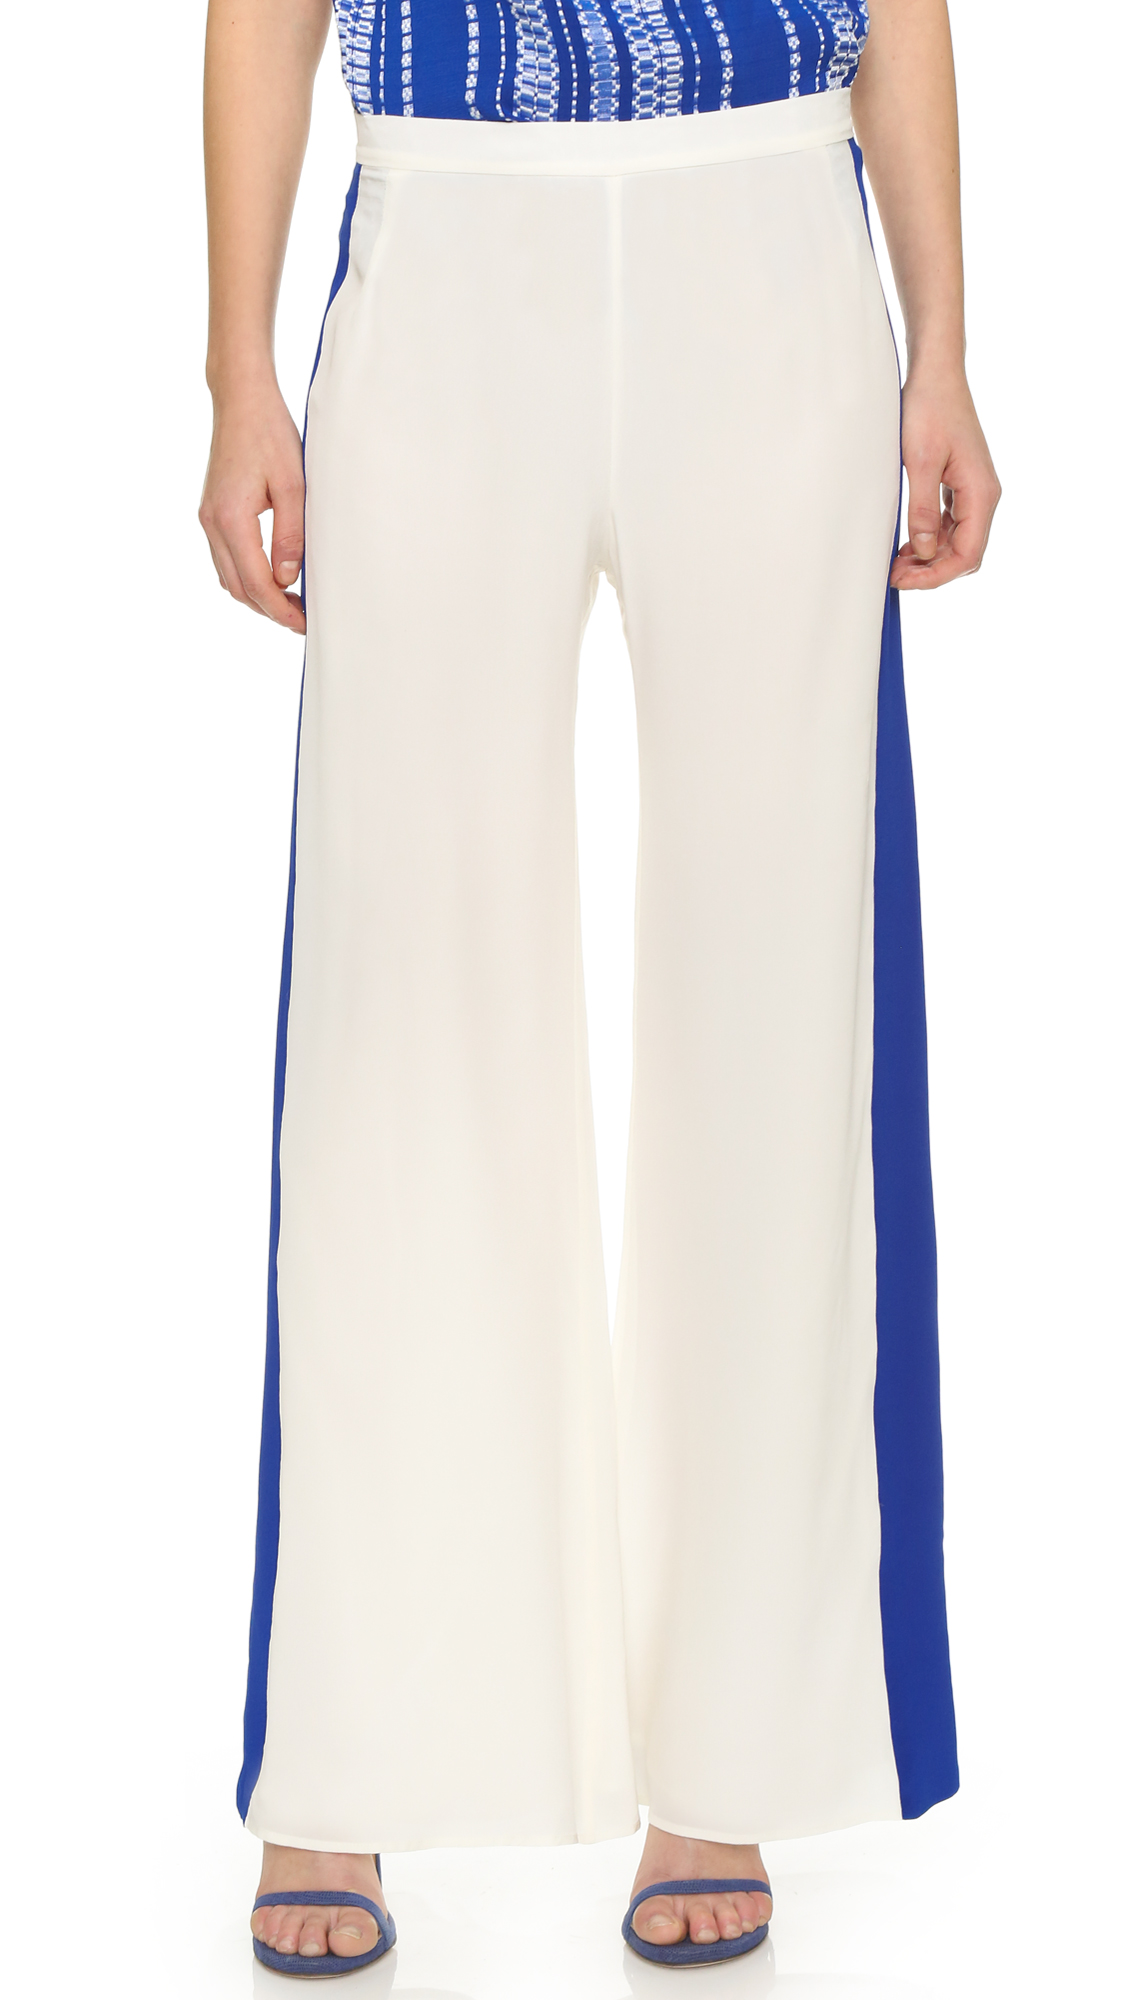 Wide leg ZEUS+DIONE trousers rendered in smooth silk. Bright stripes trim the sides. Hidden back zip. Lined. Fabric: Plain weave silk. Shell: 100% silk. Lining: 100% cupro. Dry clean. Made in Greece. Measurements Rise: 11in / 28cm Inseam: 30